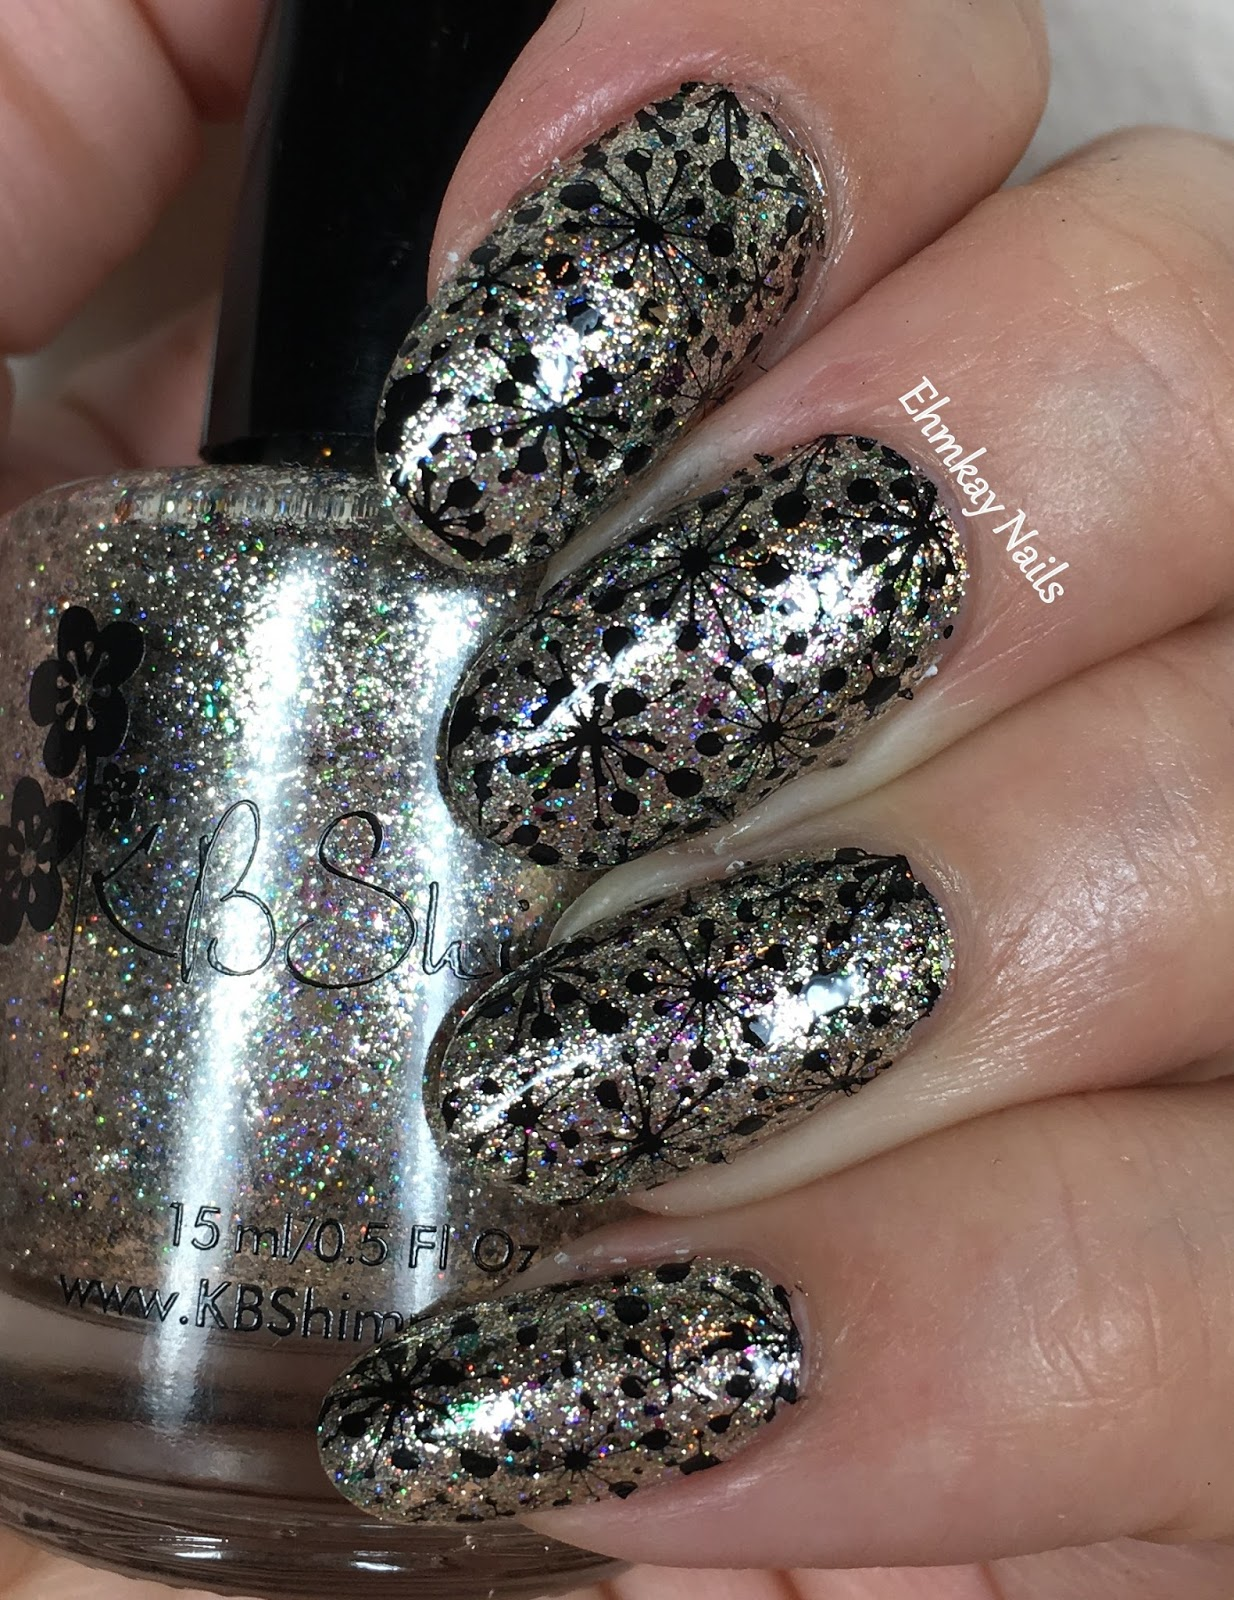 Newest Nail Trends: Ehmkay Nails: New Year's Eve Nail Art With KBShimmer Bling